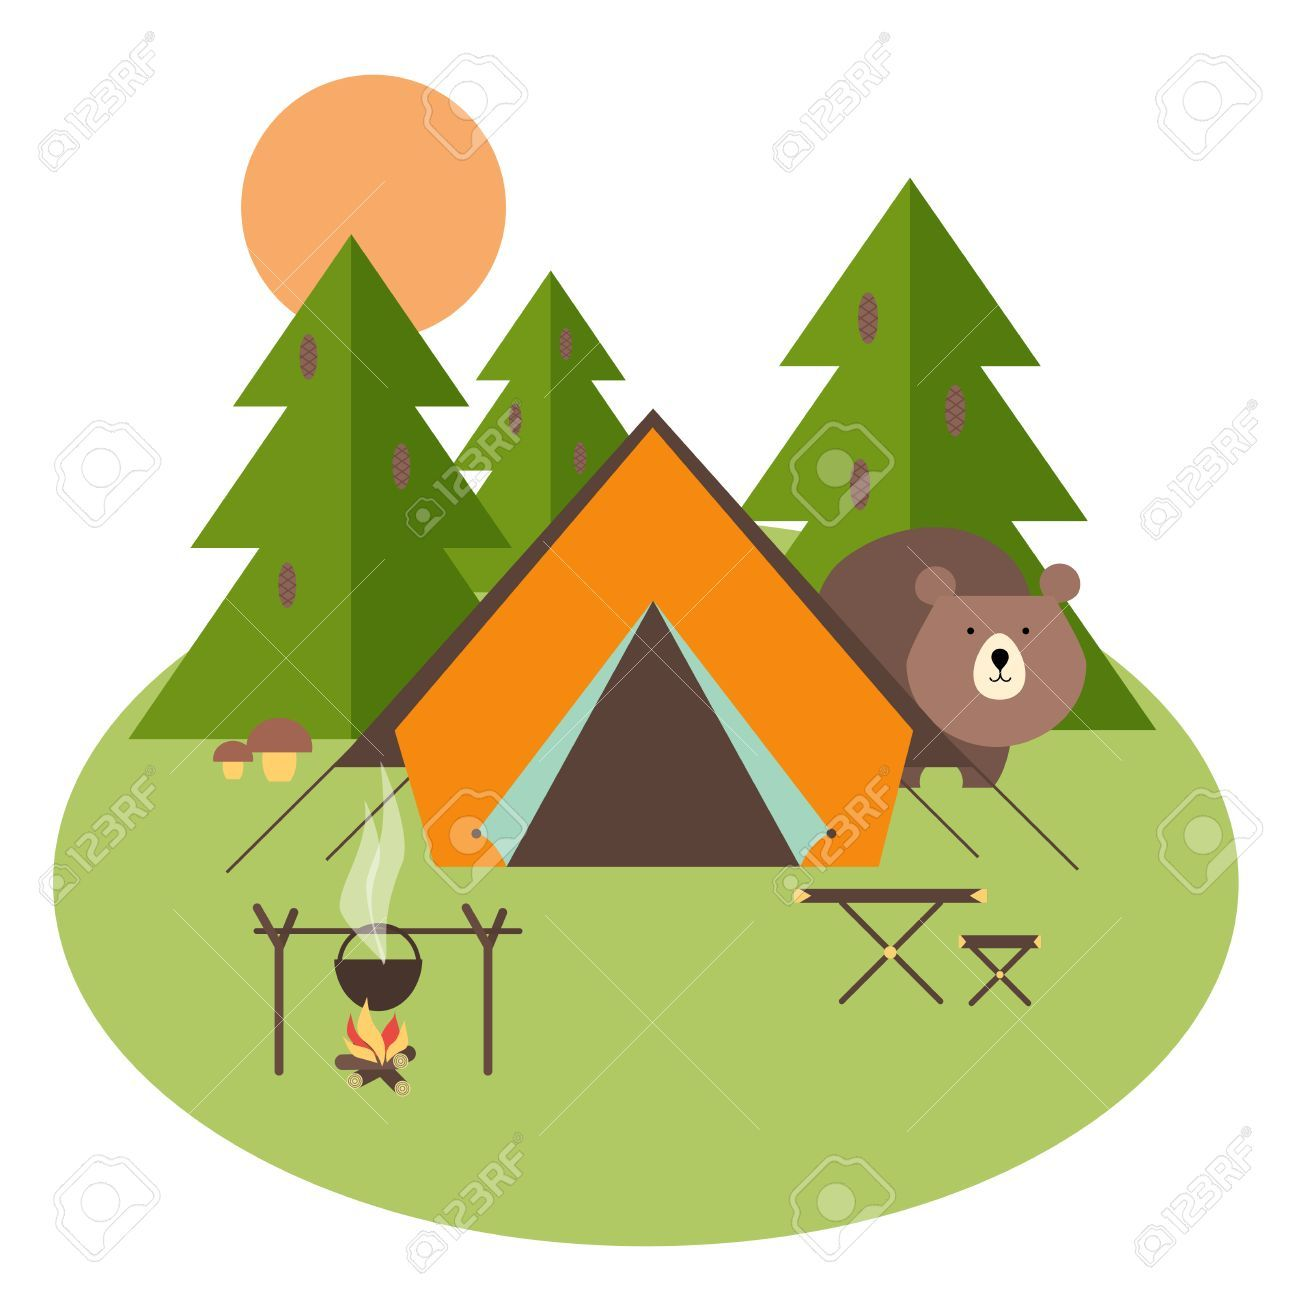 Free camping images clipart png black and white stock Free Camping Clipart 7 - 1299 X 1300 - Making-The-Web.com png black and white stock